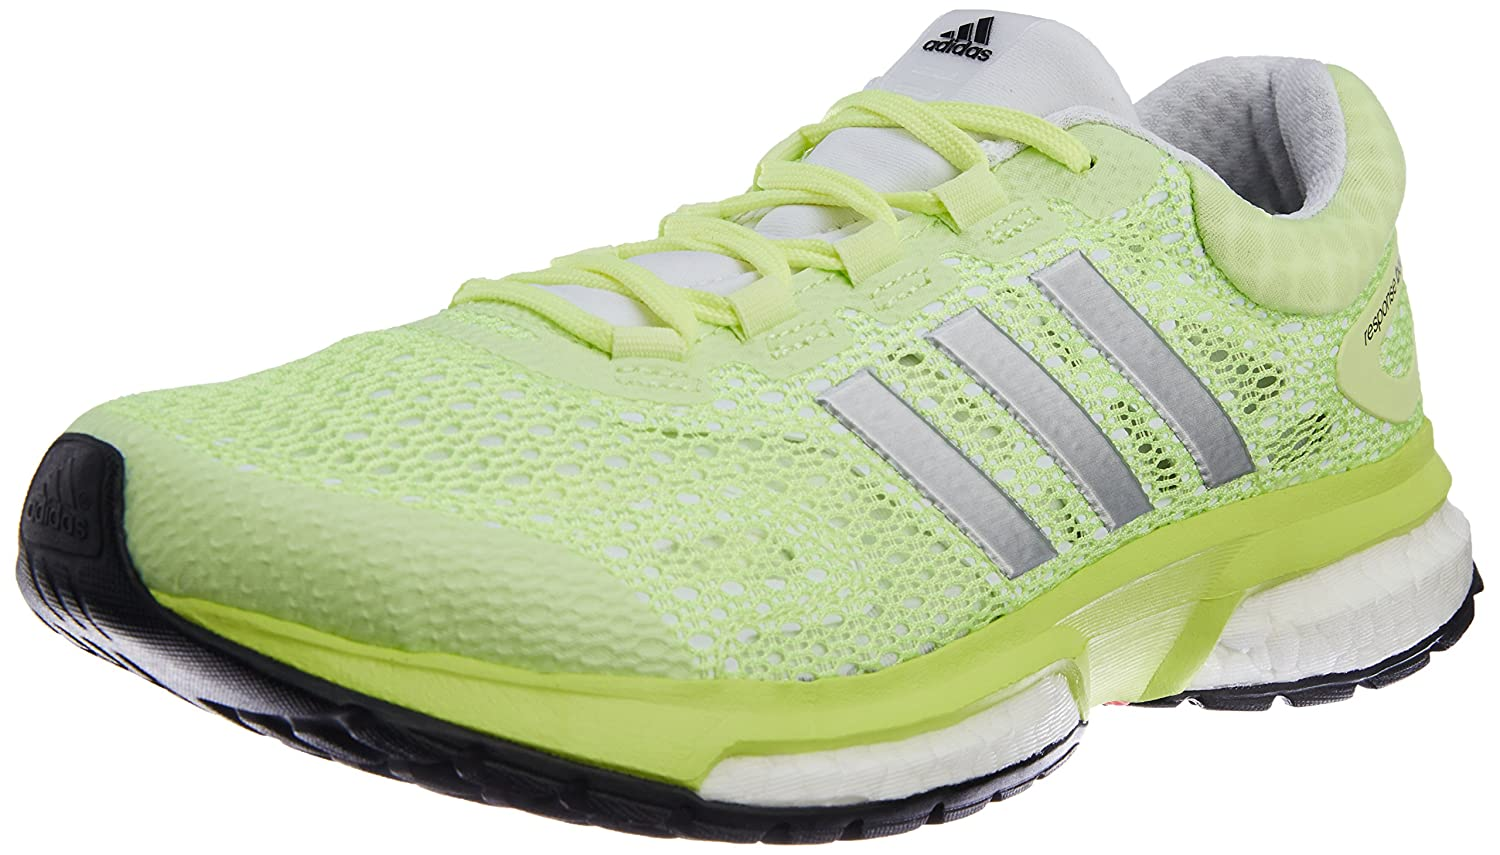 australia adidas boost ladies running shoes 6f459 9d526